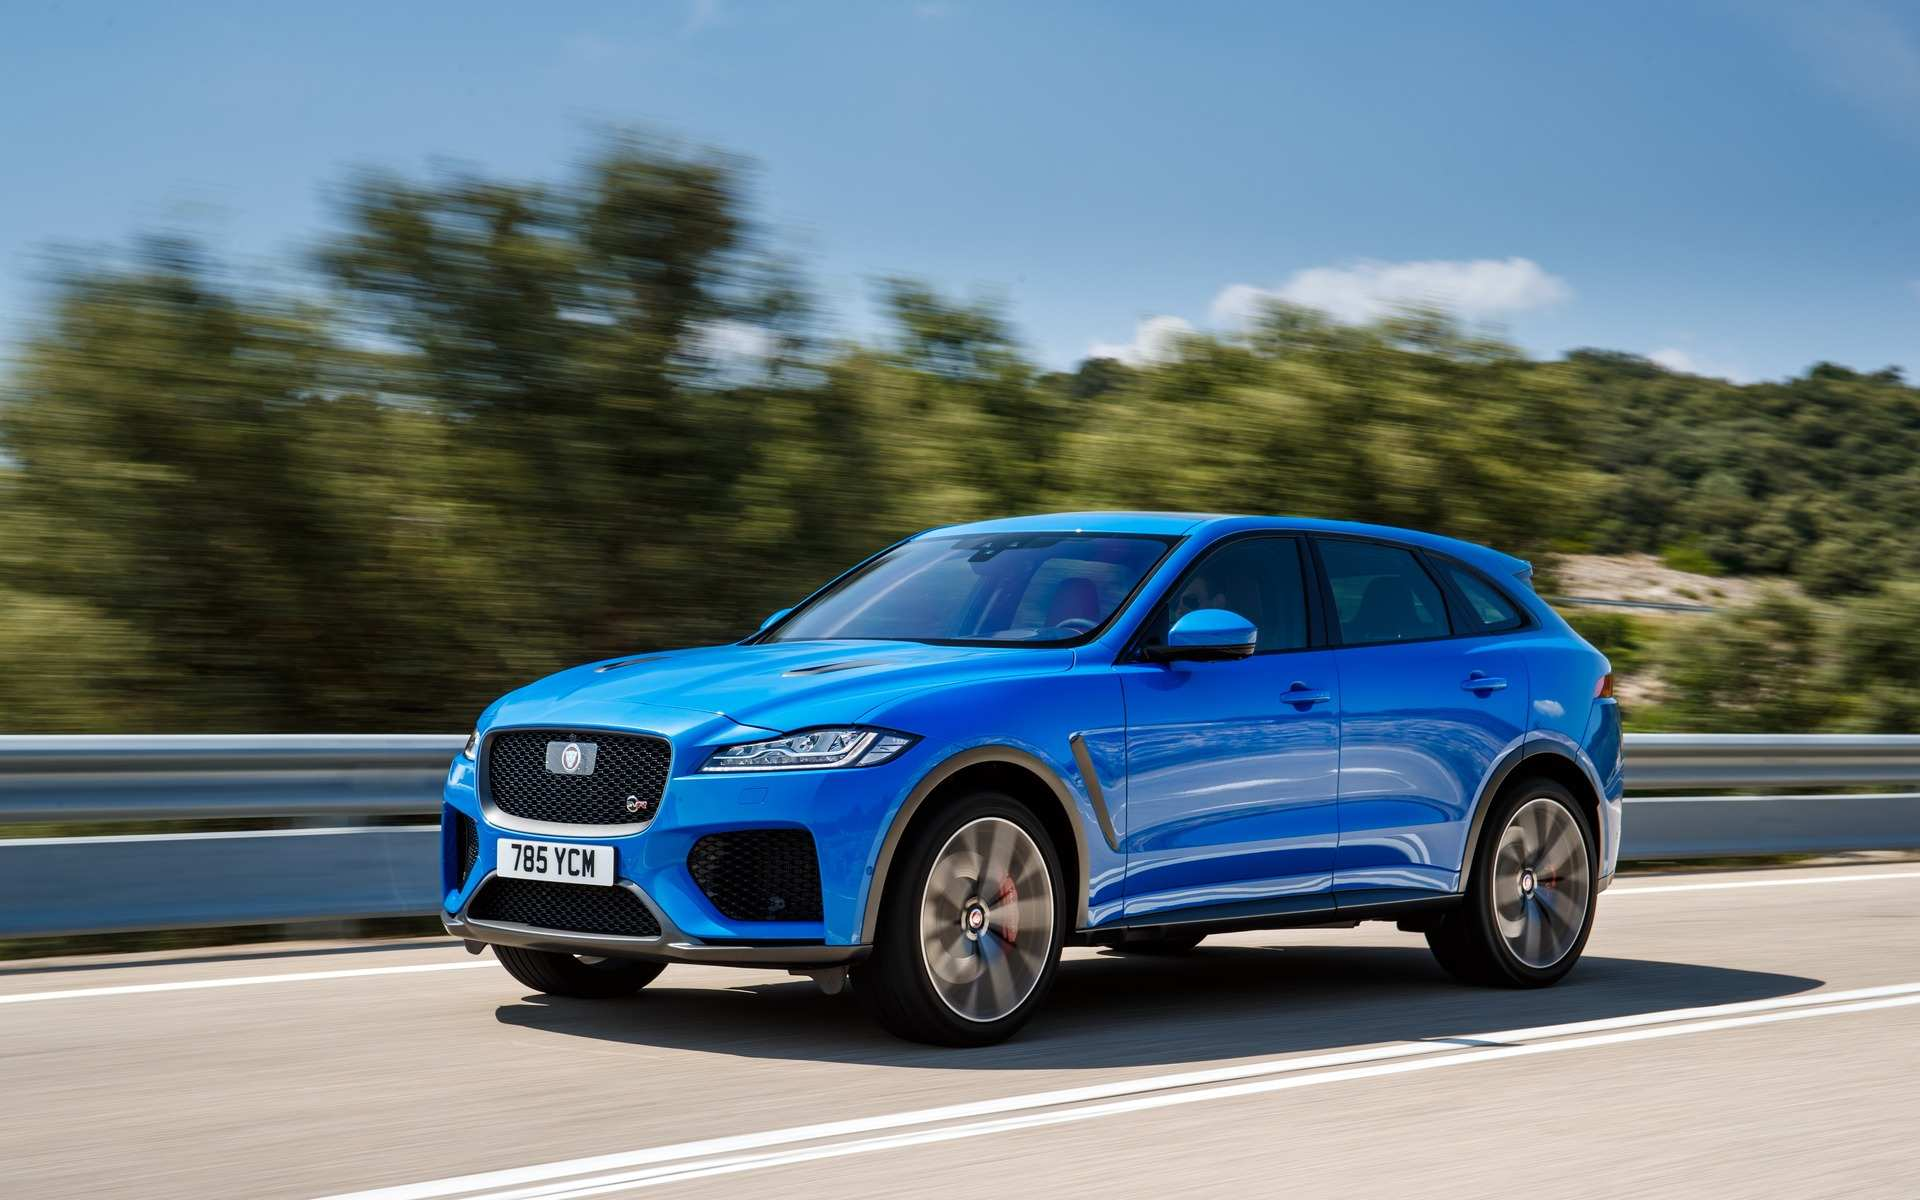 55 New Jaguar I Pace Model Year 2020 Price And Review